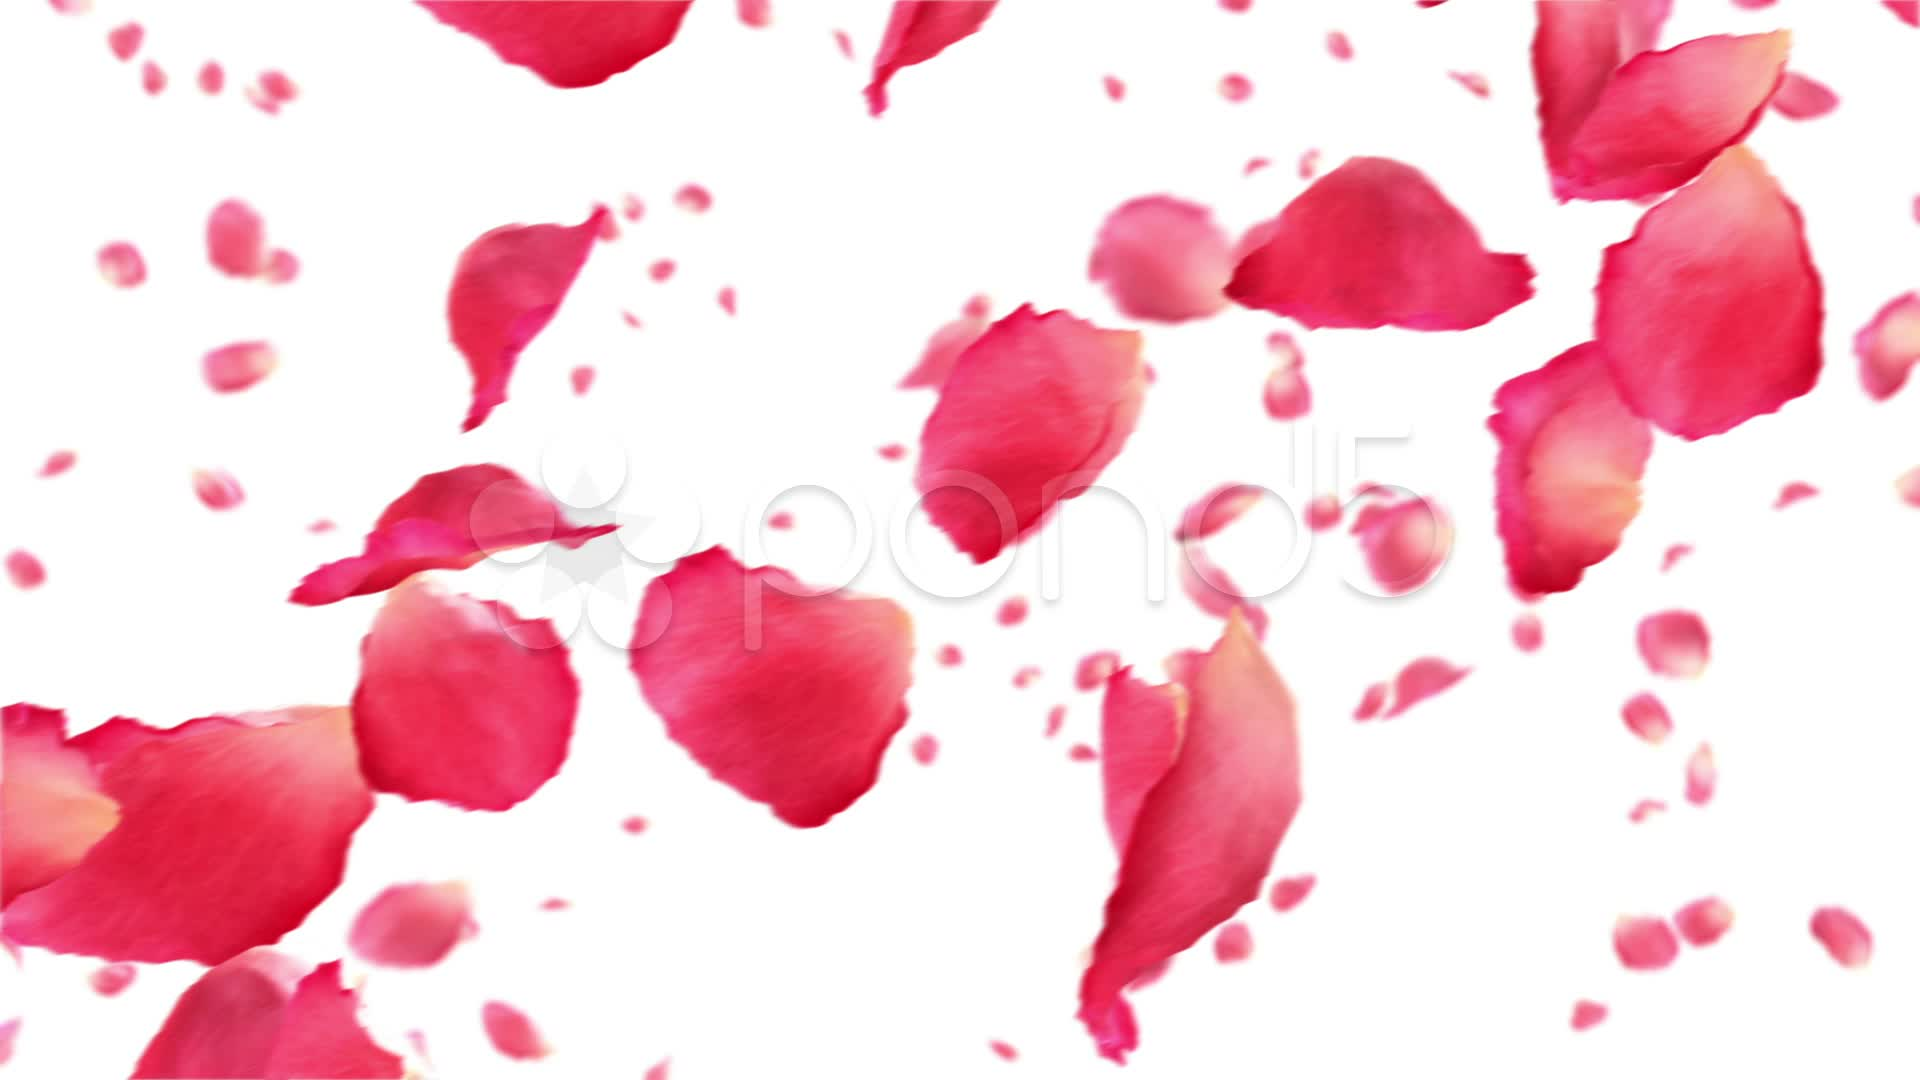 Flower Petals Drawing At Getdrawings Free For Personal Use